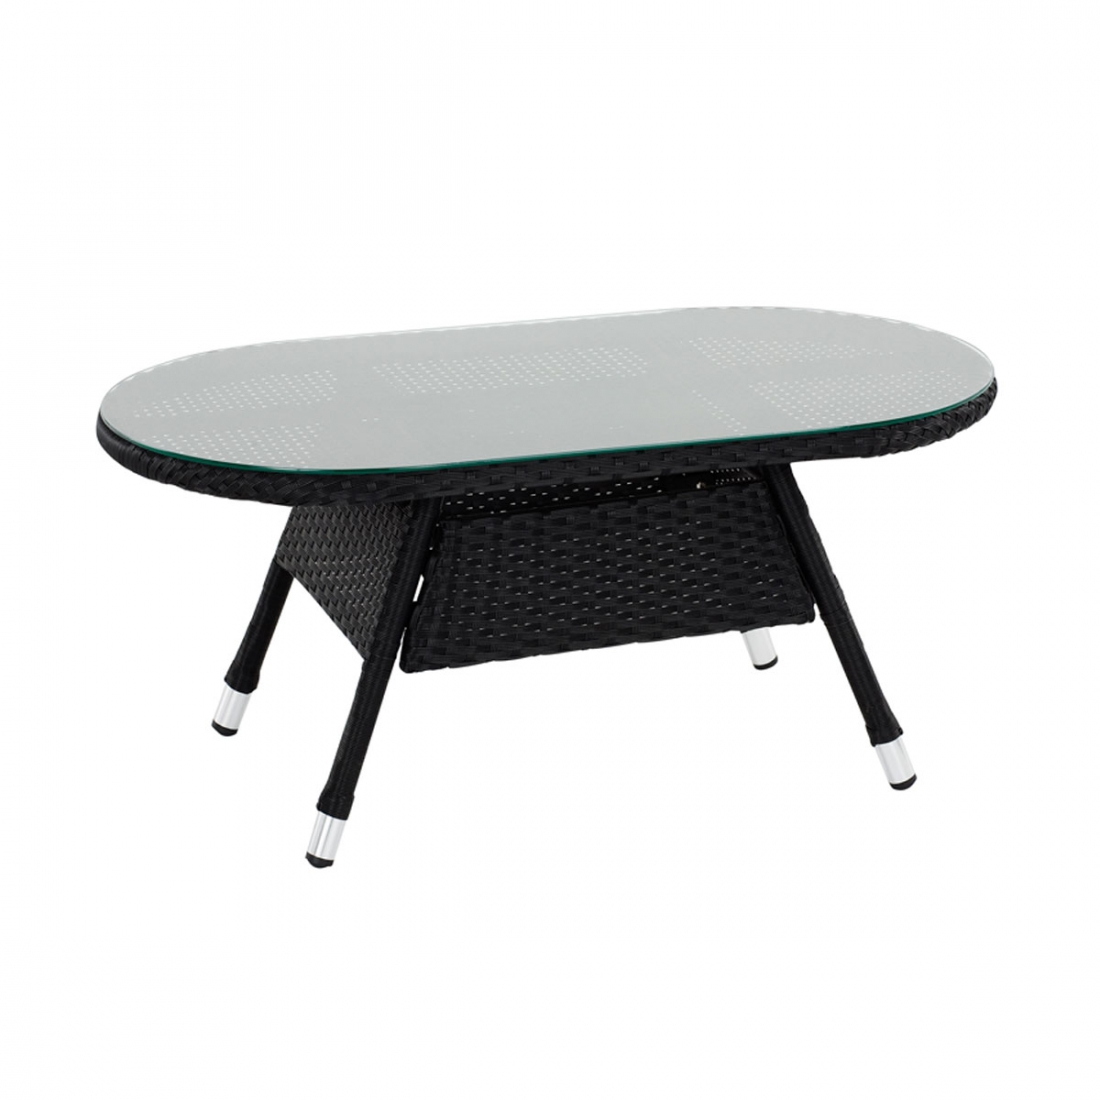 Table basse ext rieur tub zendart design - Table basse d exterieur ...